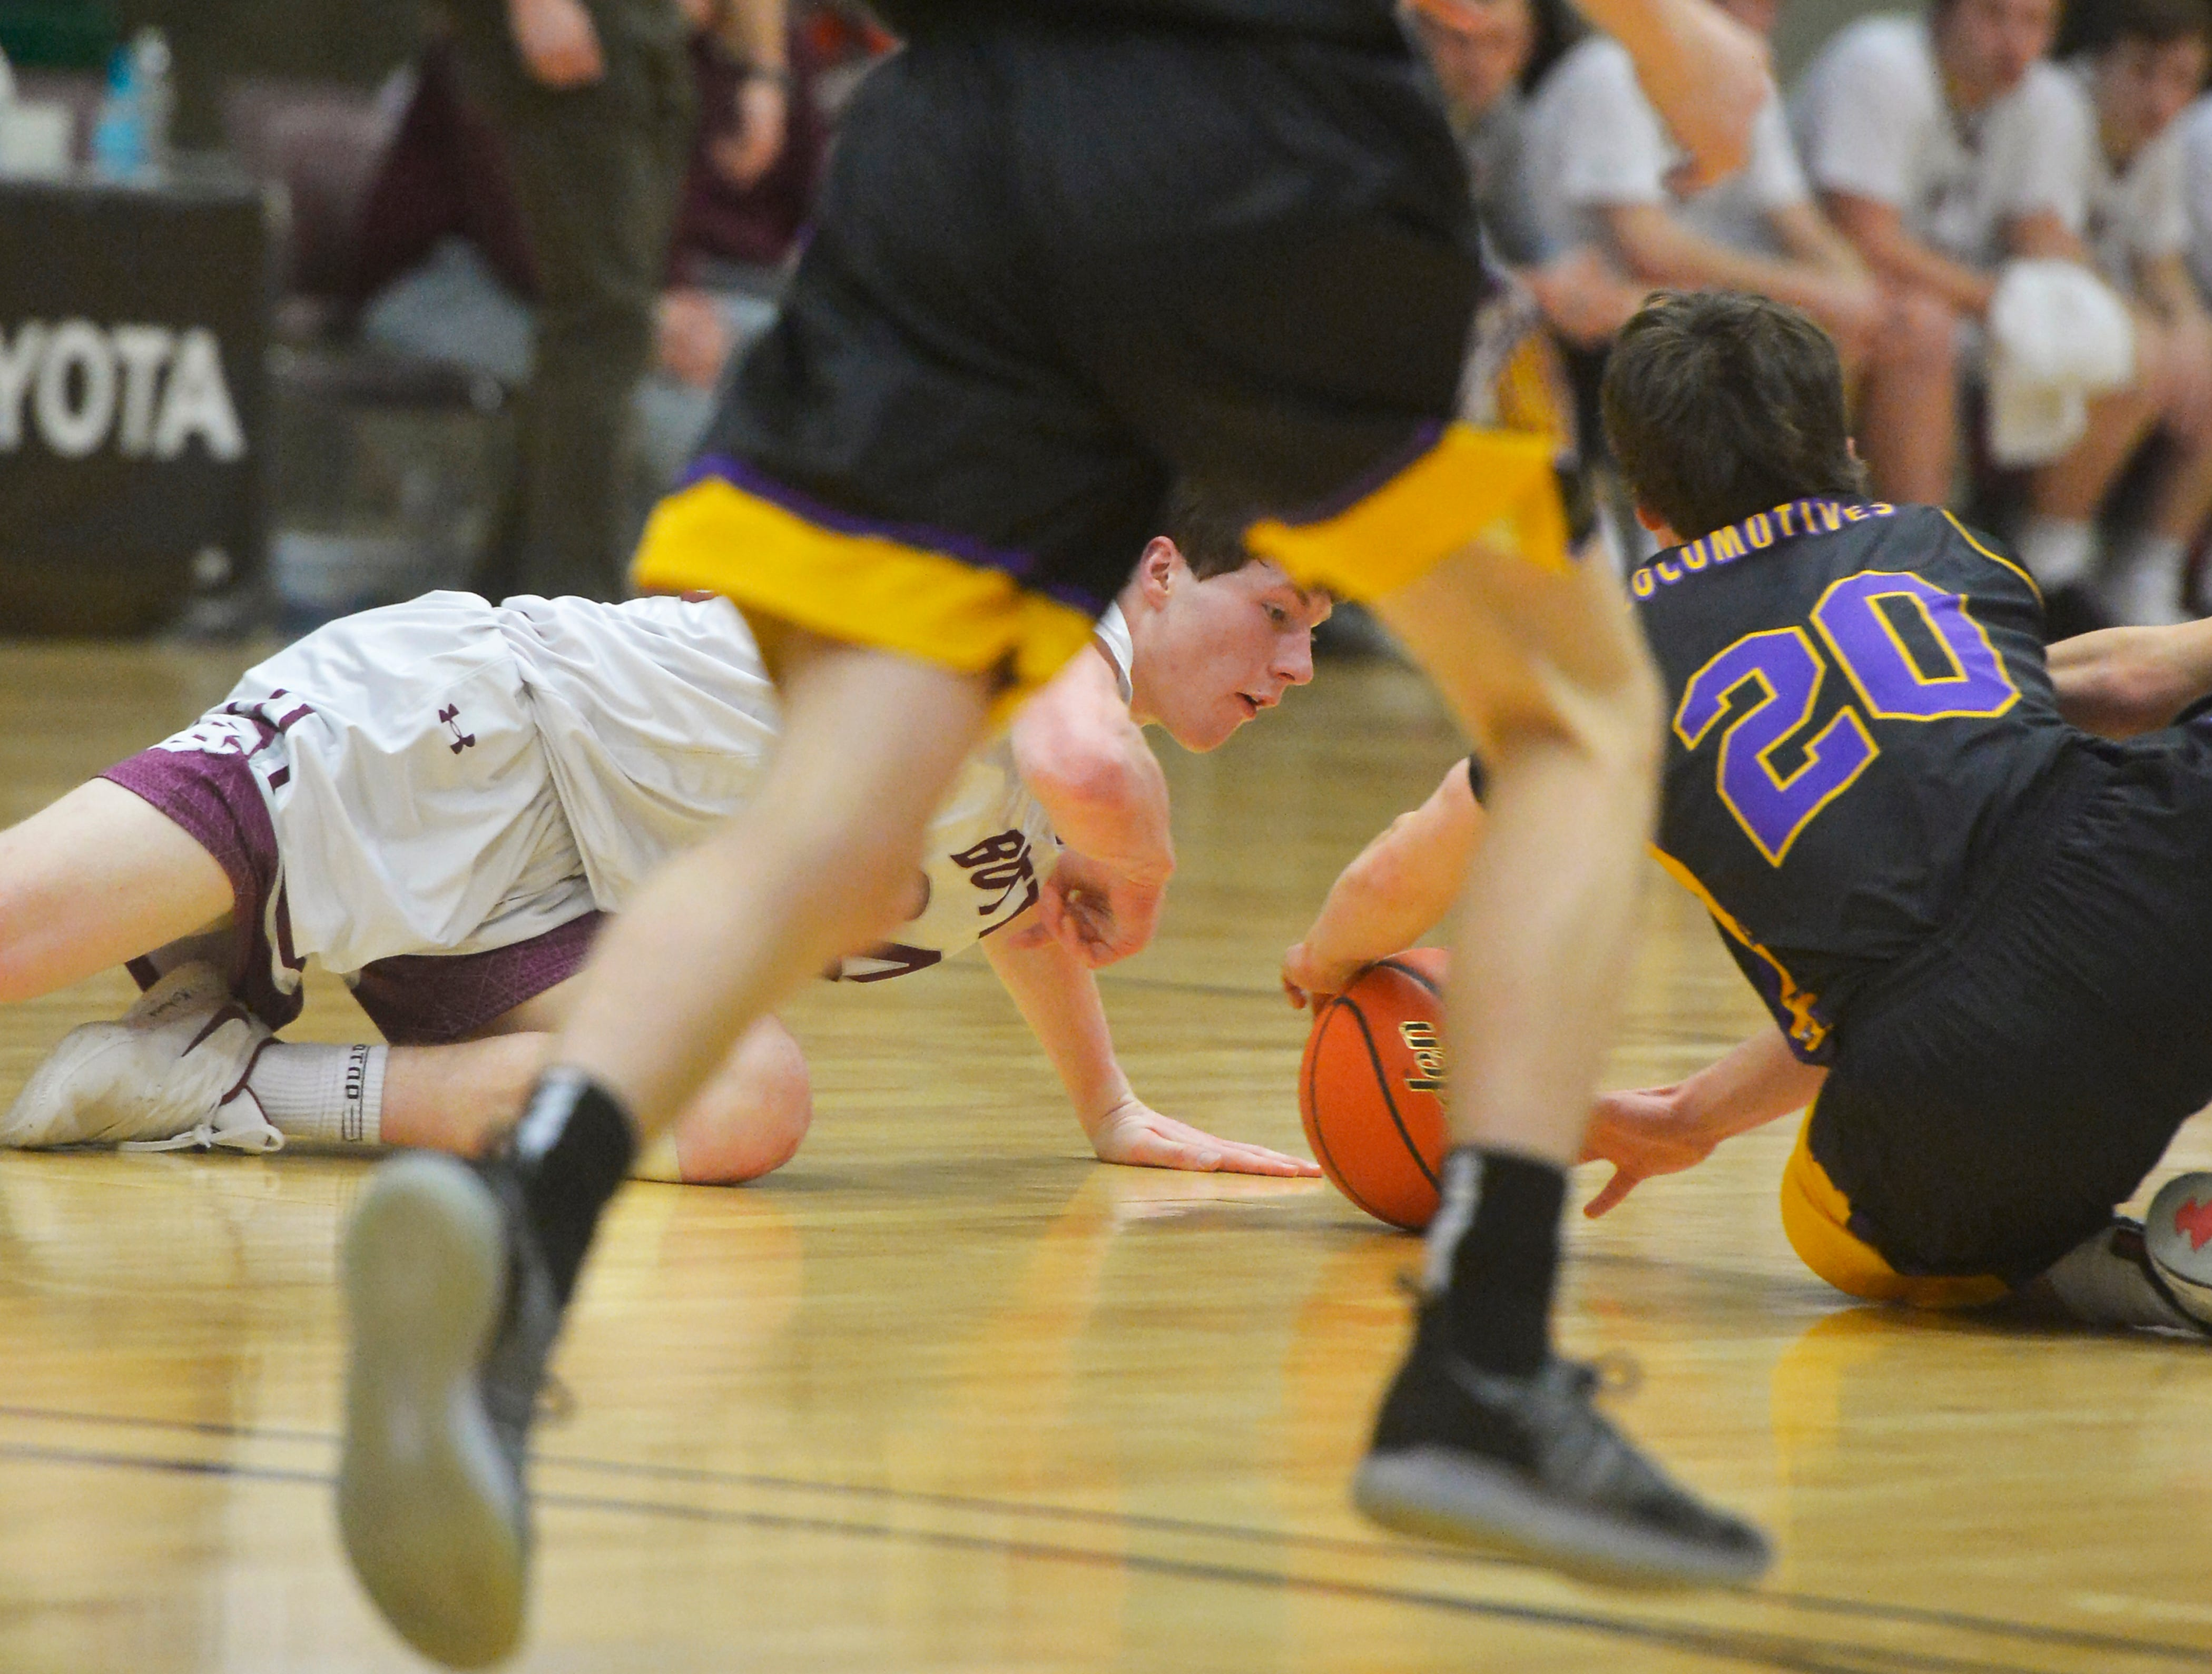 Butte Central's Cade Holter and Laurel's Eli Aby scramble for a loose ball during the Class A State Basketball Tournament on Thursday in the Four Seasons Arena.